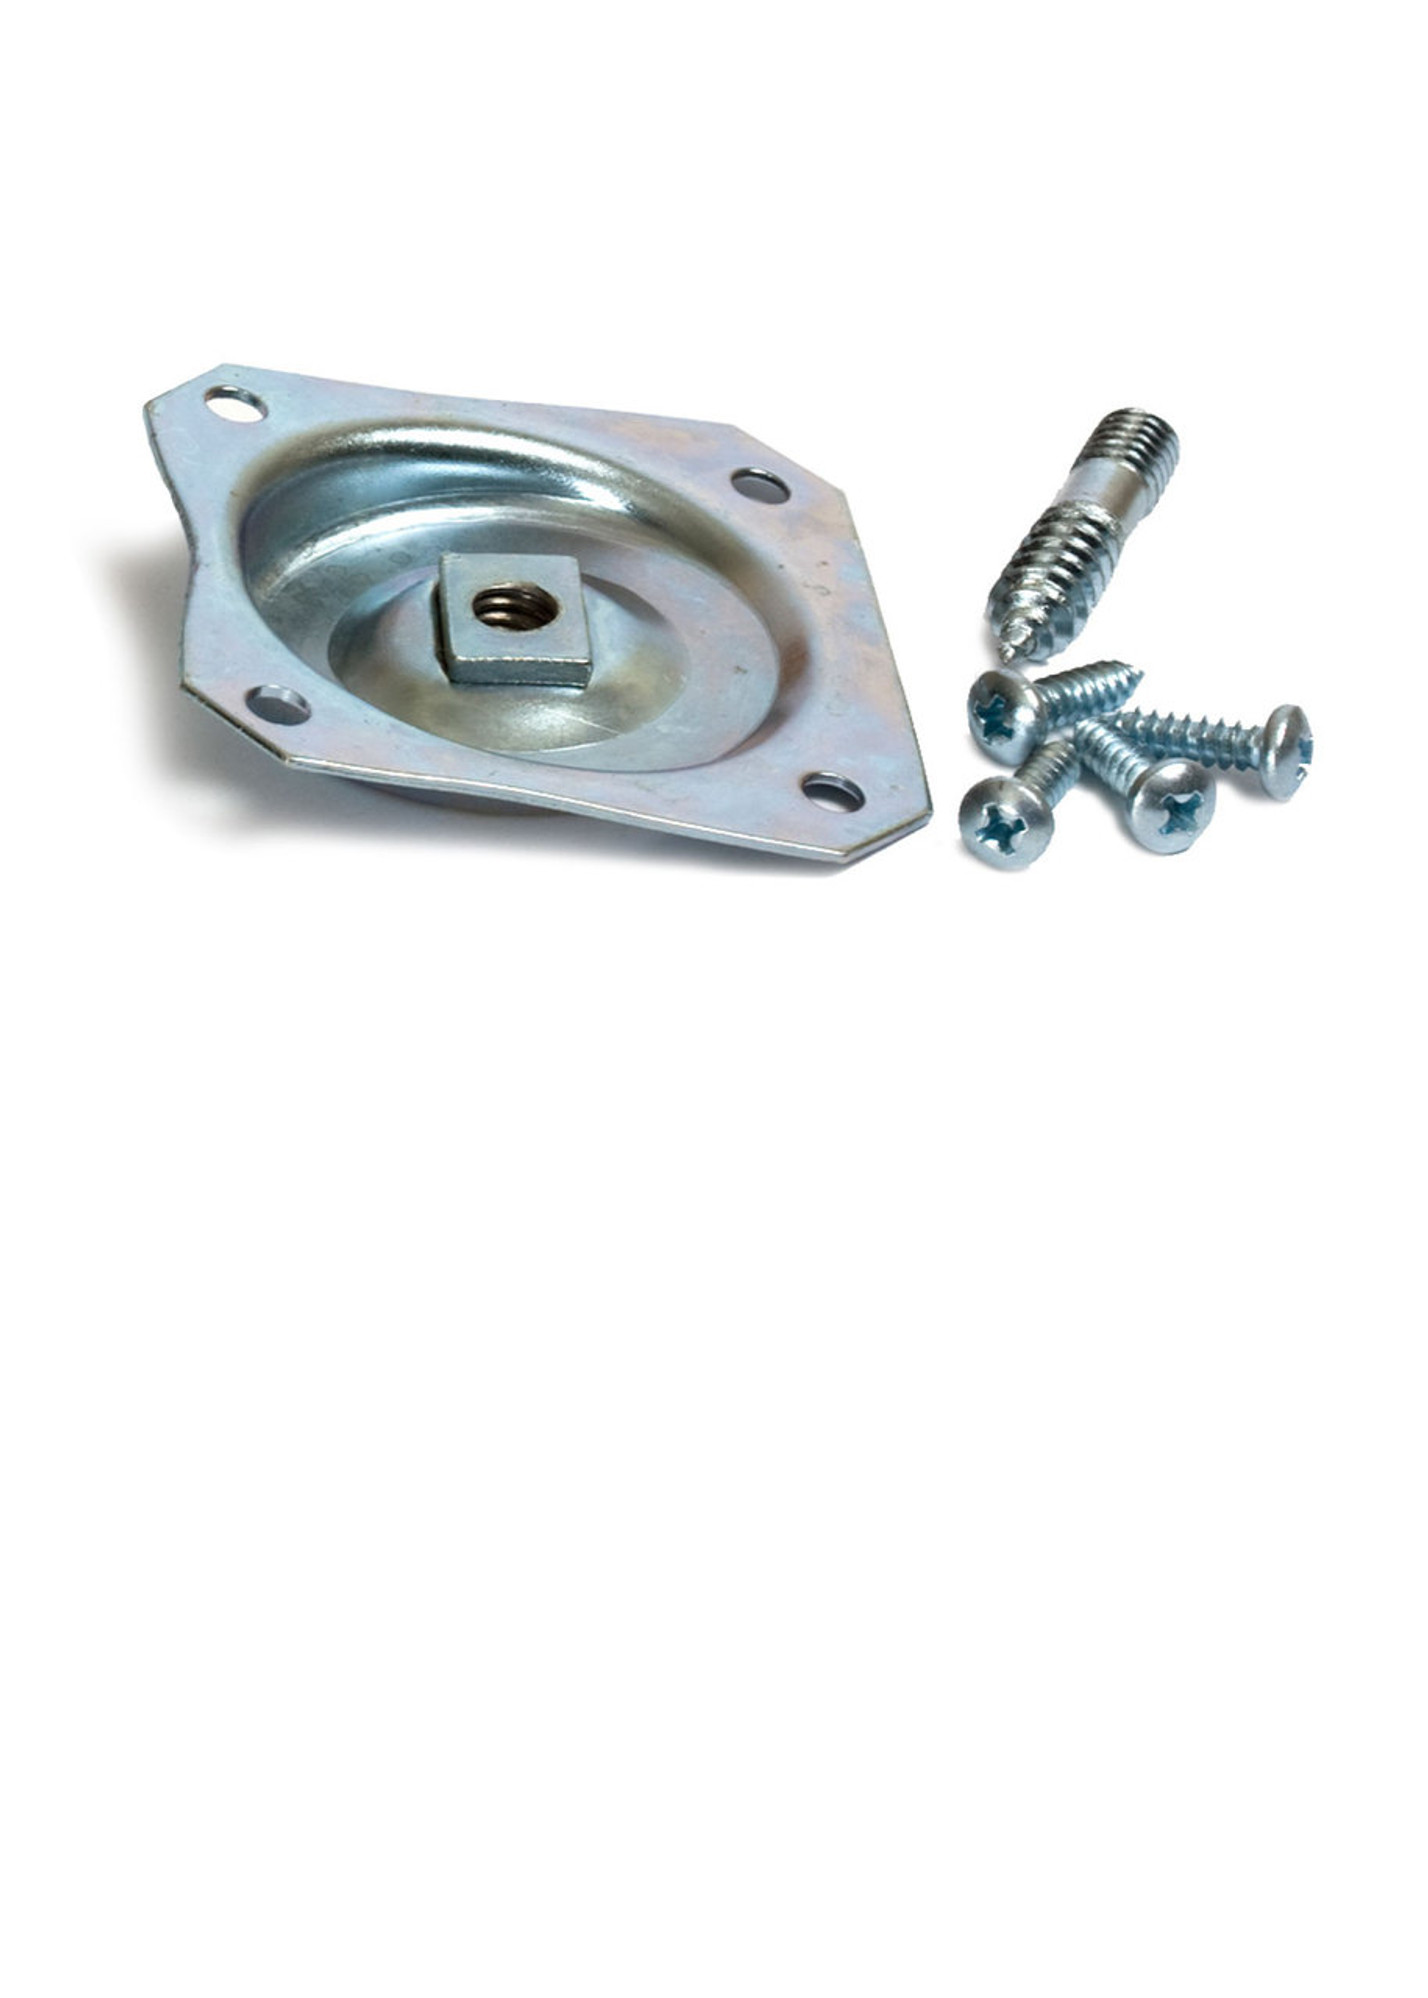 Angle Metal Attachment Plate For Furniture Feet Legs